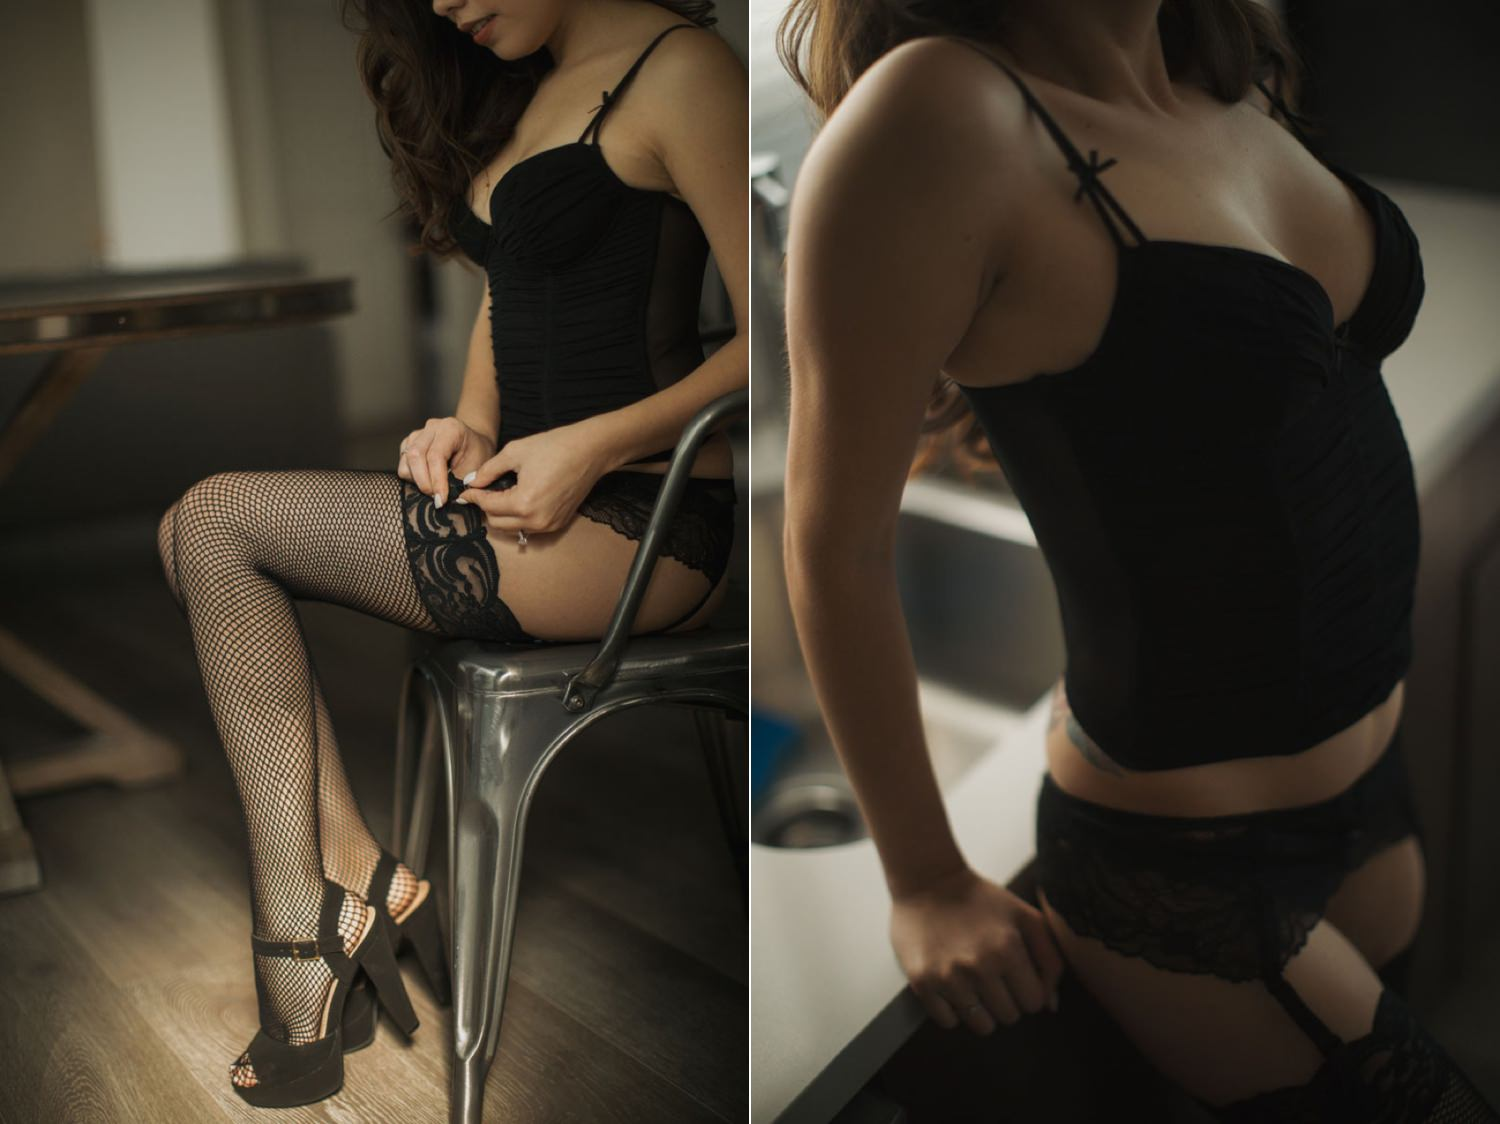 Sexy photograph of woman pulling up her stockings